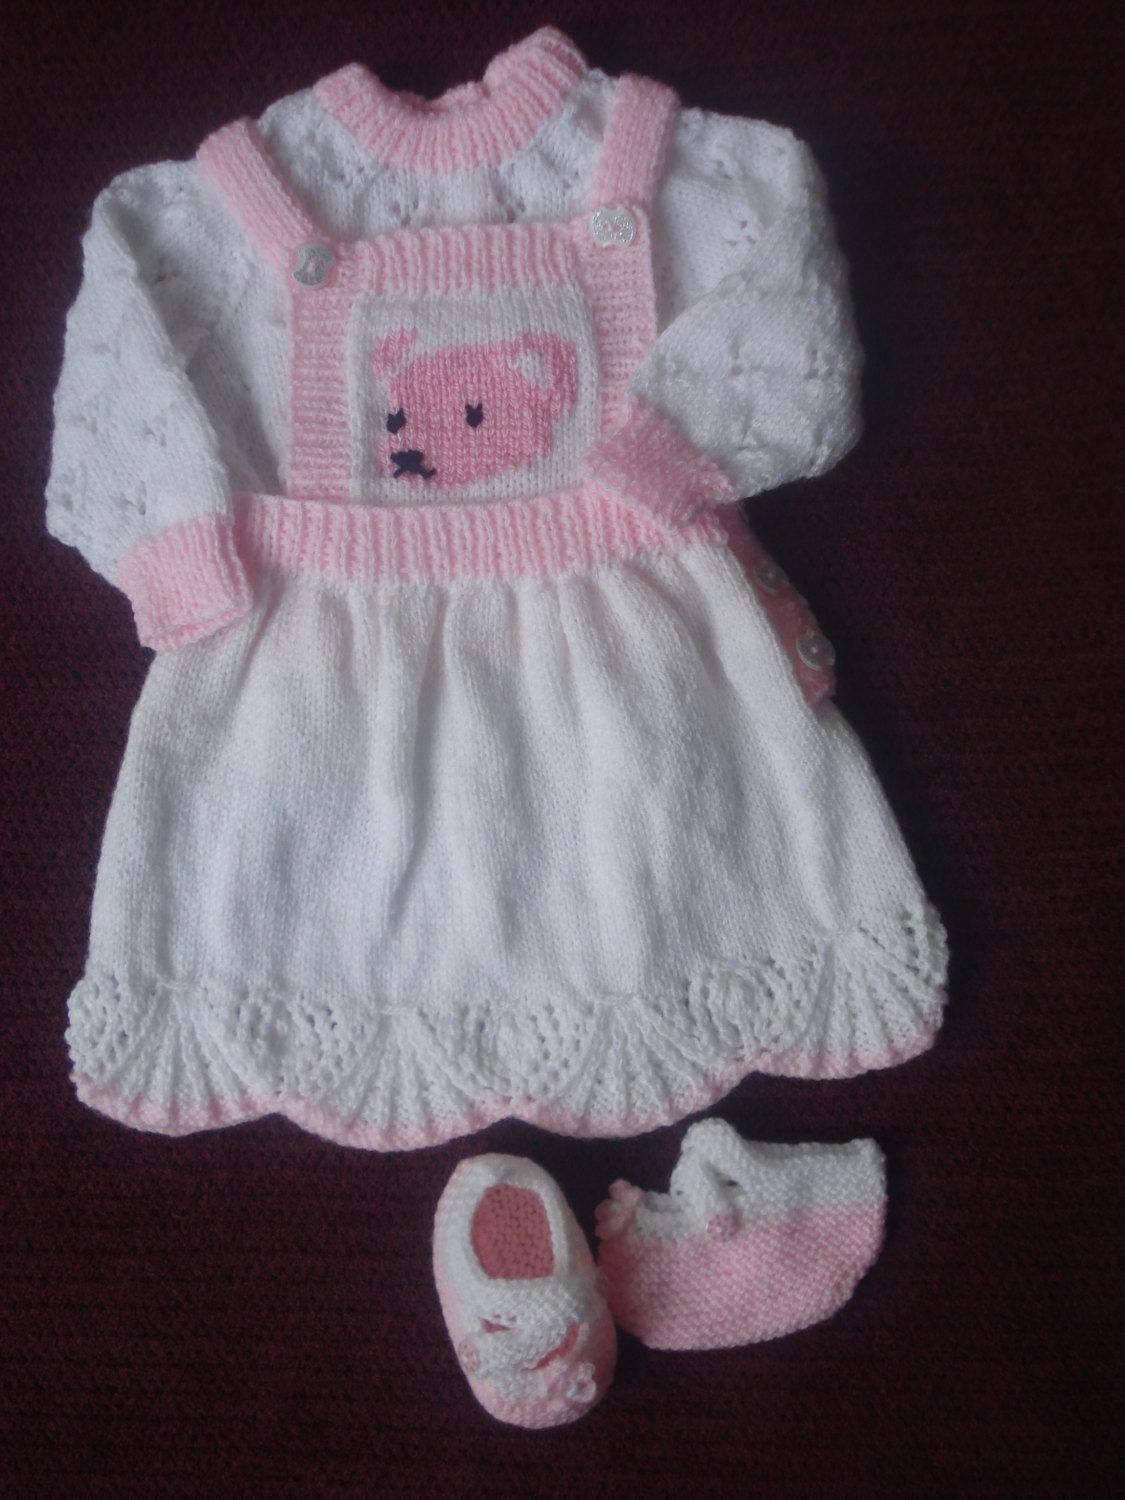 Pink dress baby  Hand Knitted Pink and White Dress with Teddy Face on Bib Front